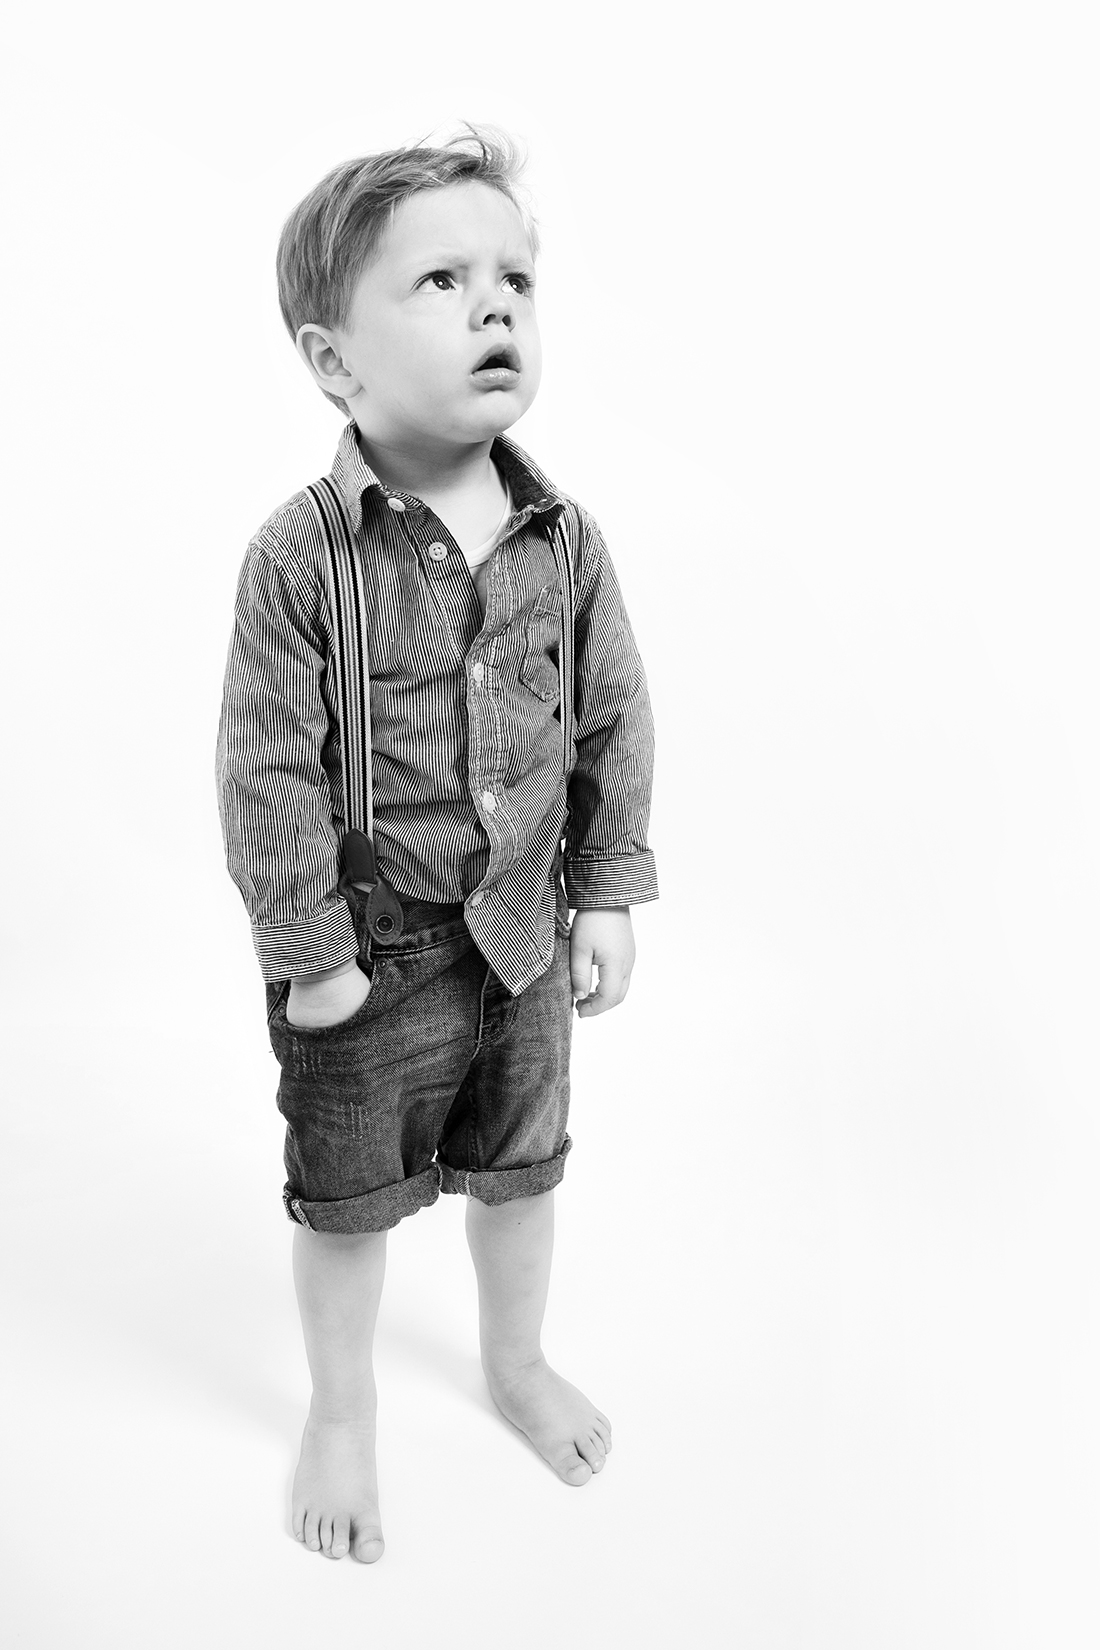 Kinderfotos Little Monkey Fotografie, Berlin 2015